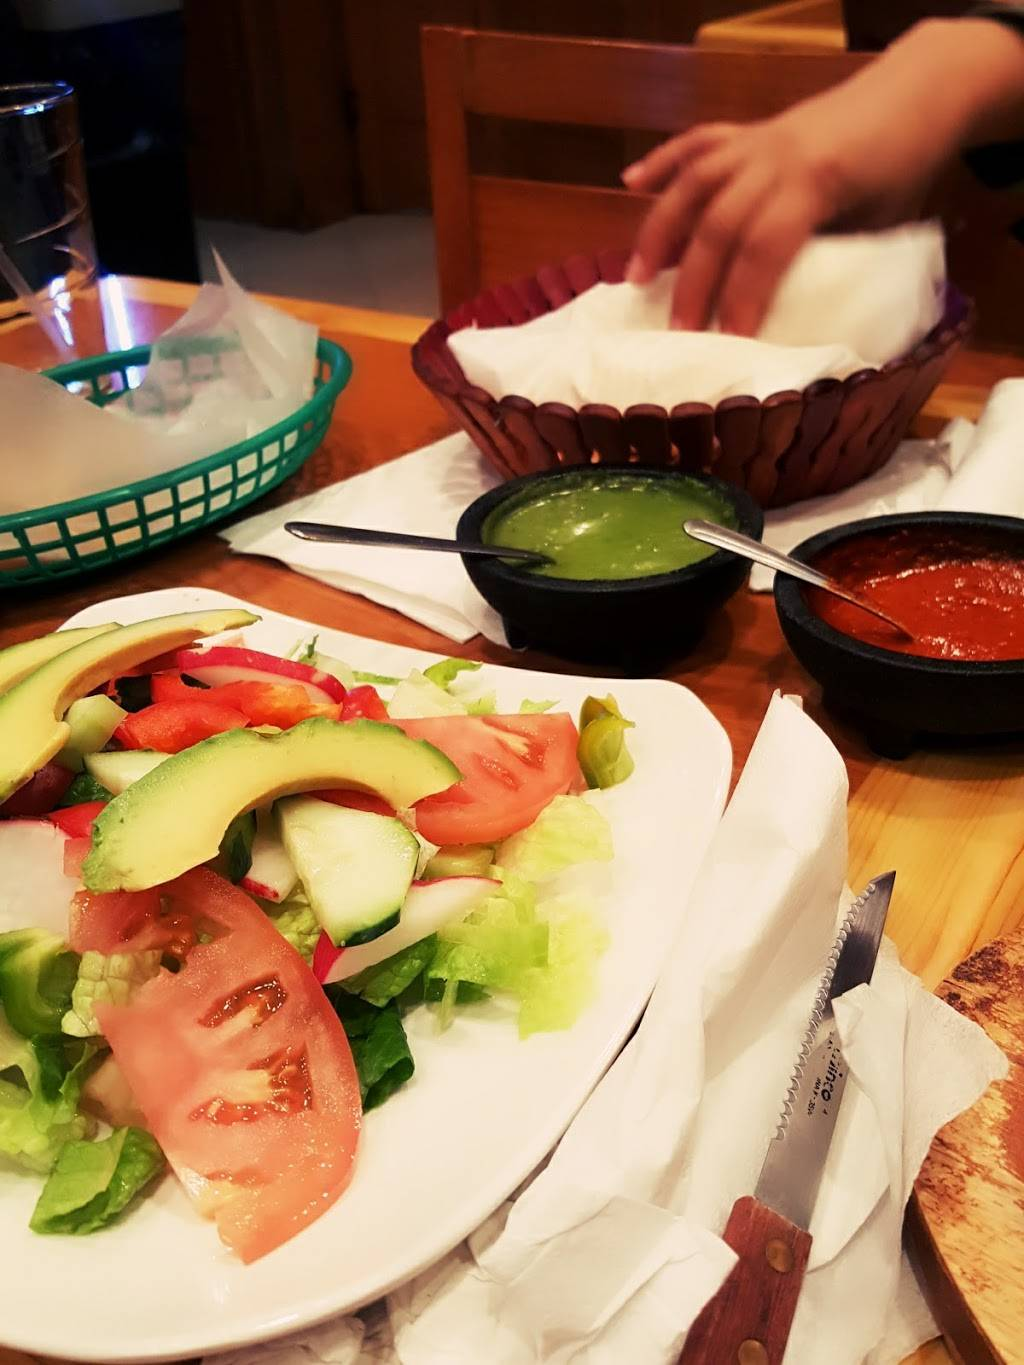 Tacos y Quesadillas Mexico | restaurant | 10440 Corona Ave, Corona, NY 11368, USA | 7182714260 OR +1 718-271-4260